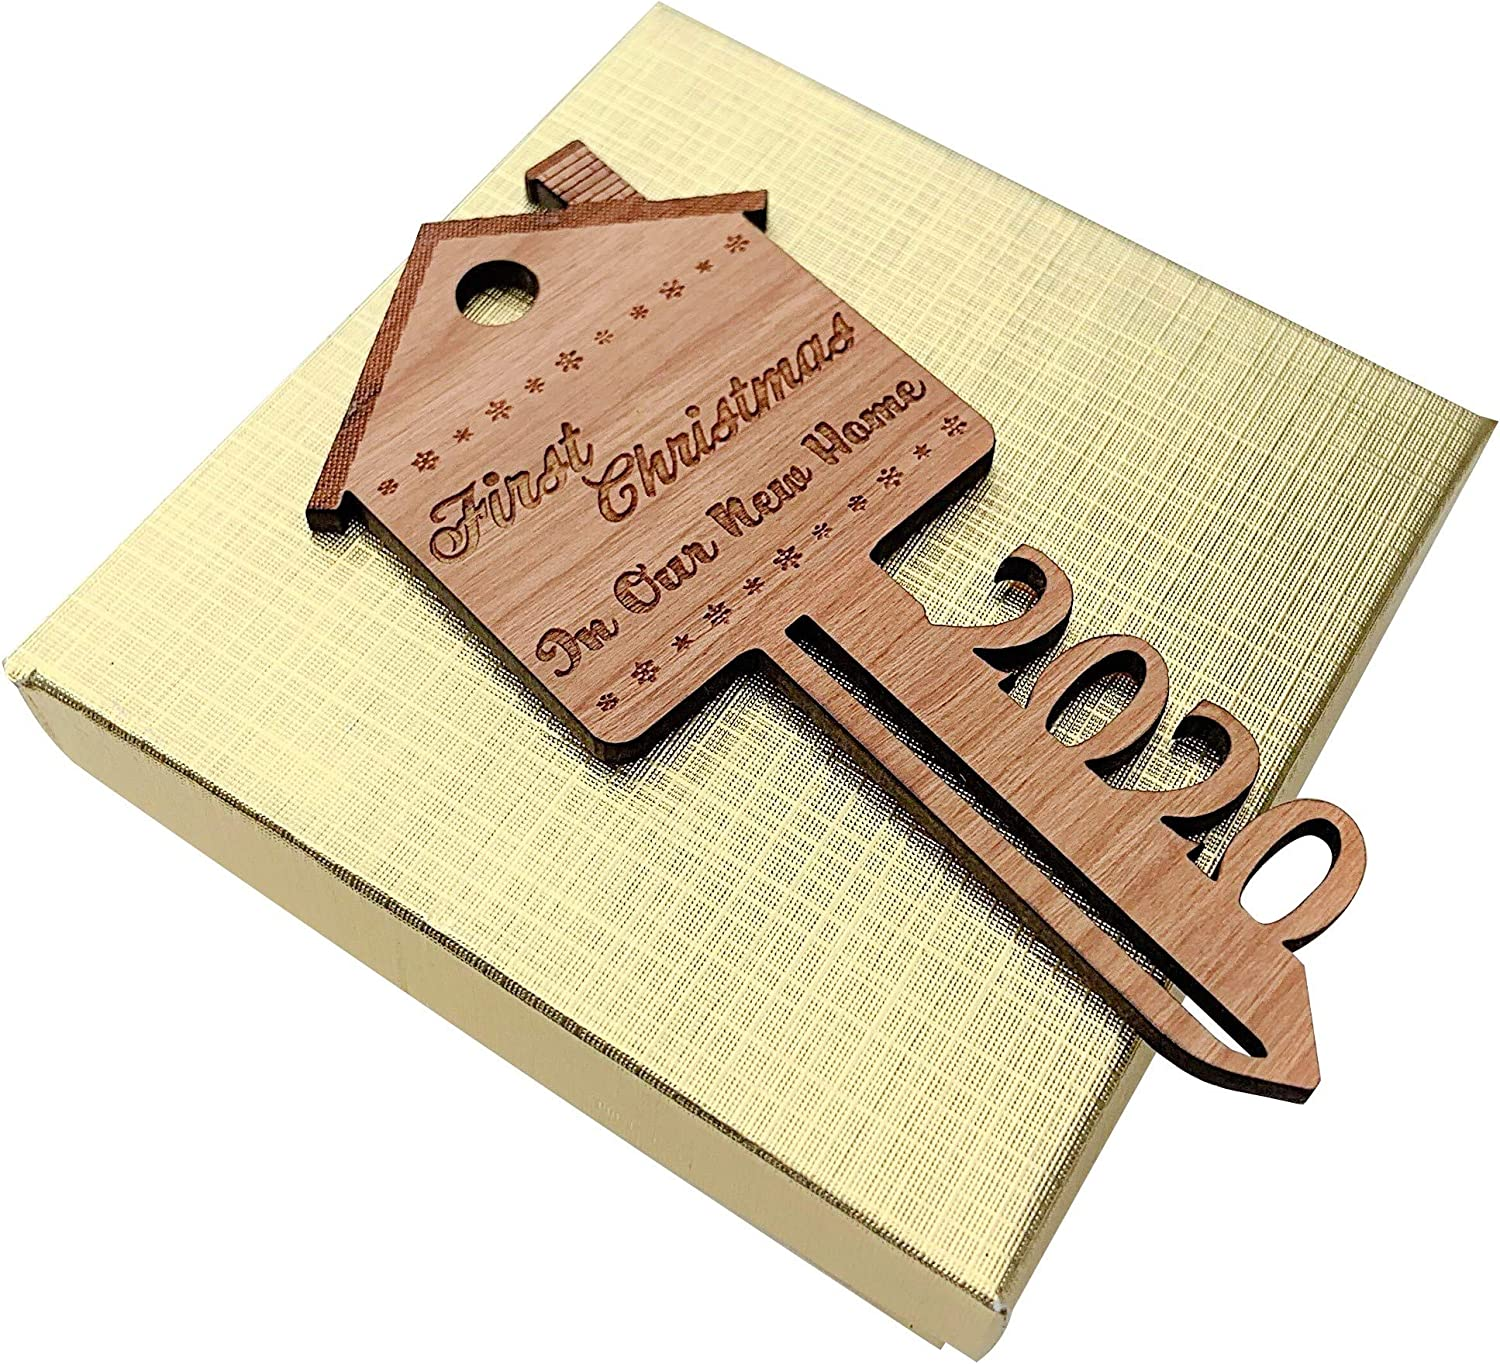 2020 First Christmas in Our New Home Wooden Key Shape Ornament Non-Personalized with Gift Box and String